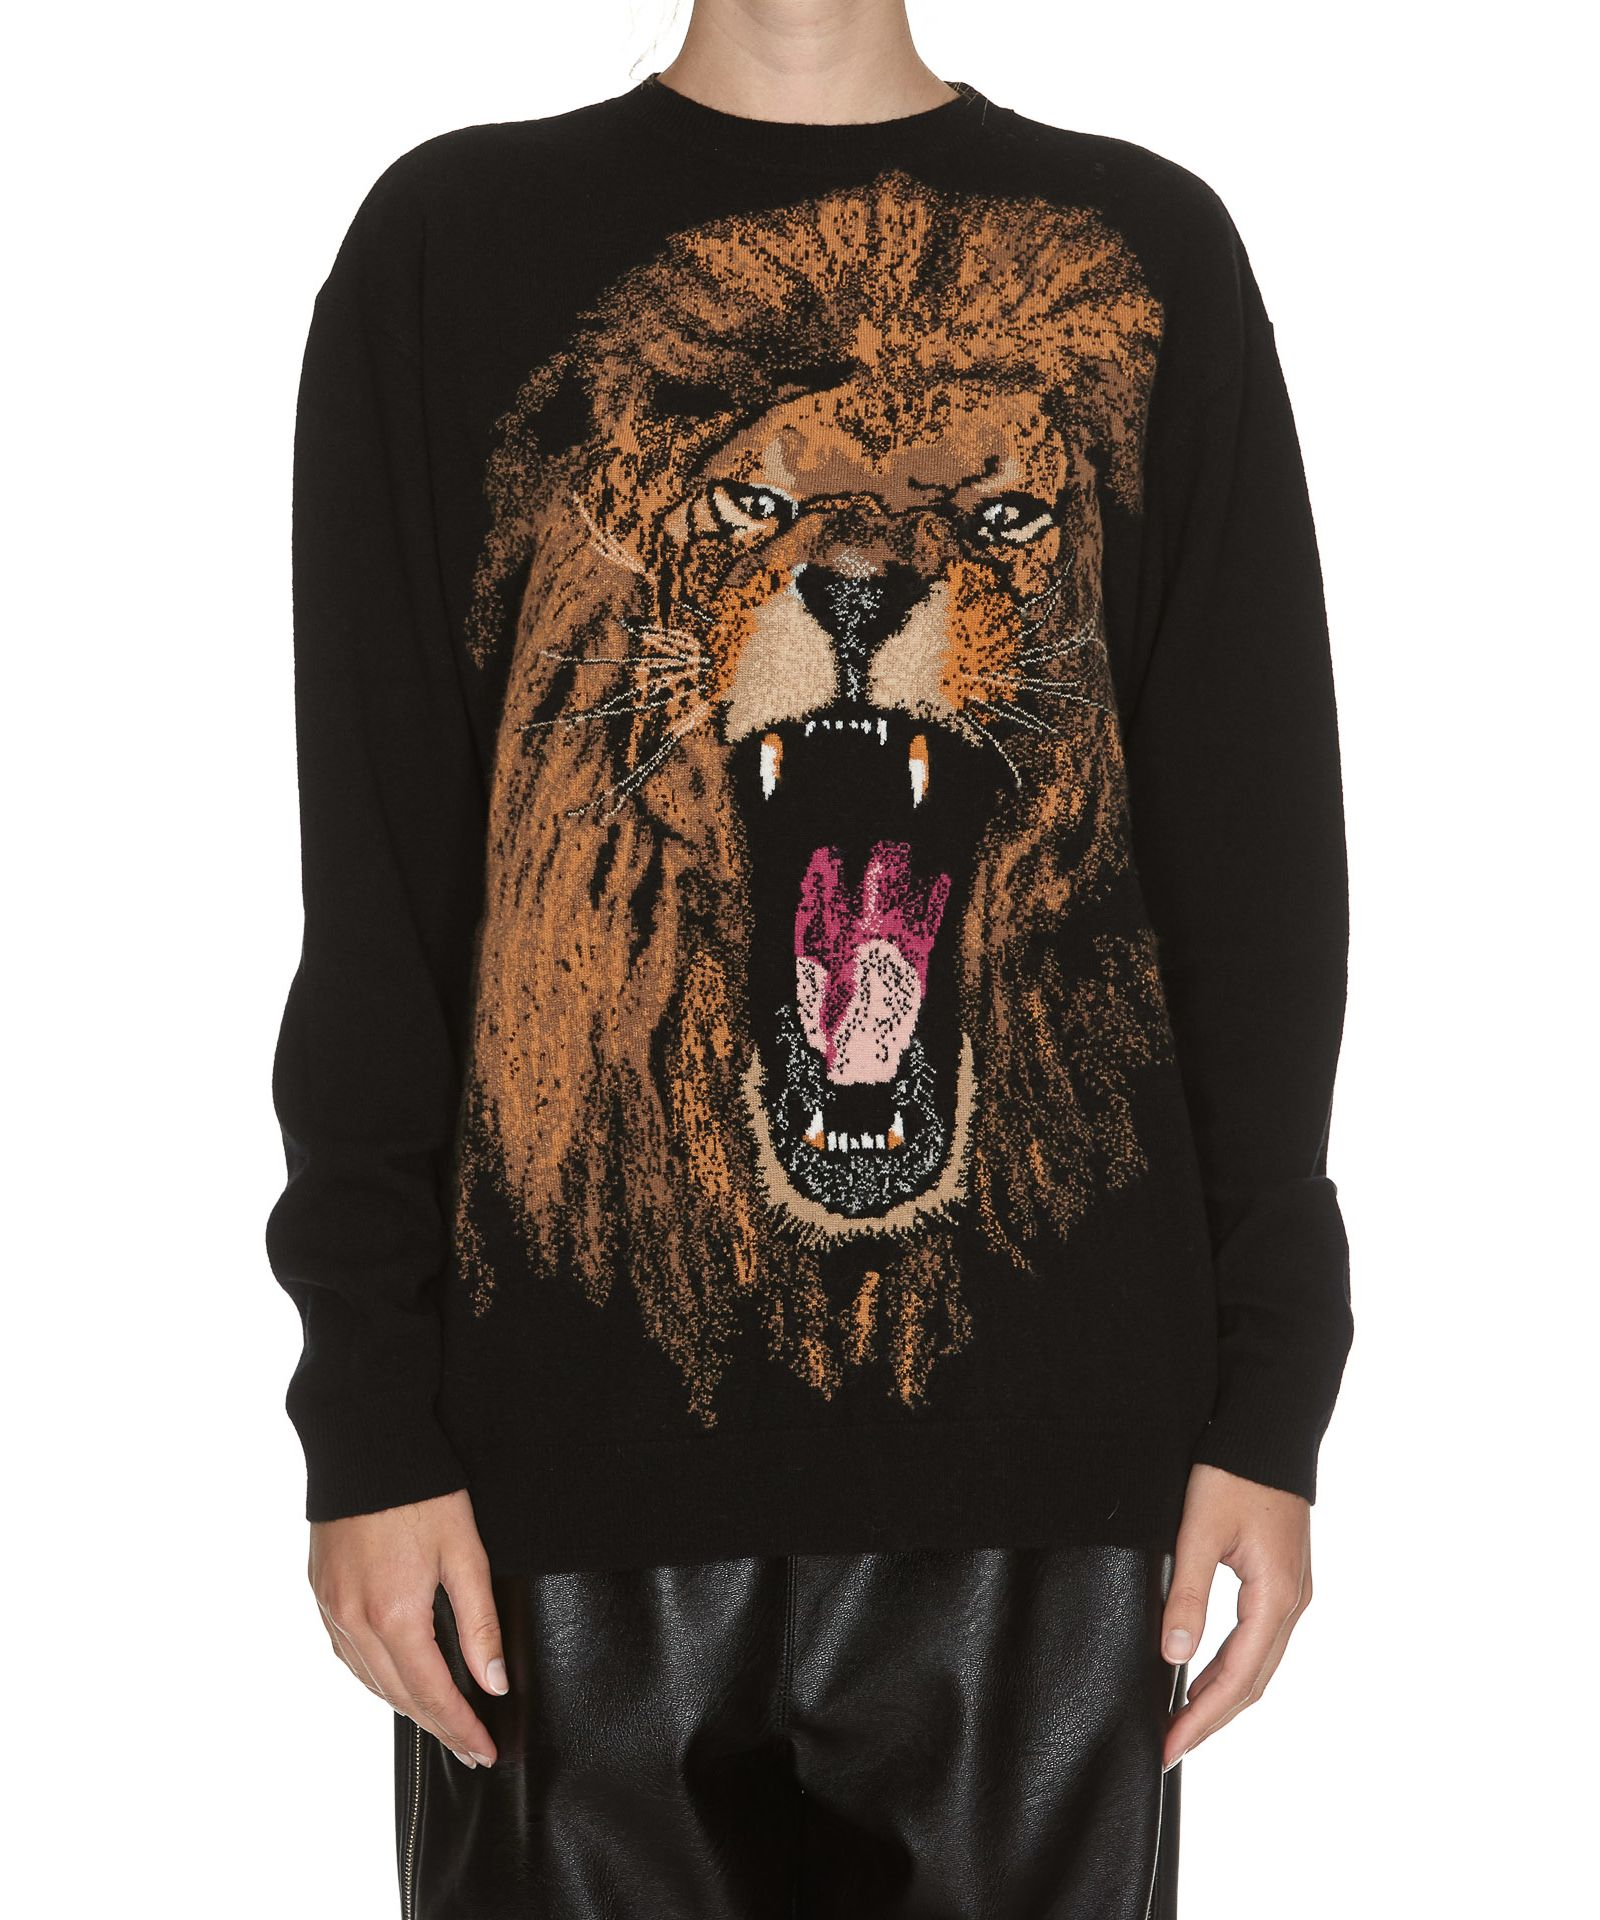 STELLA MCCARTNEY LION INTARSIA CREW NECK SWEATER